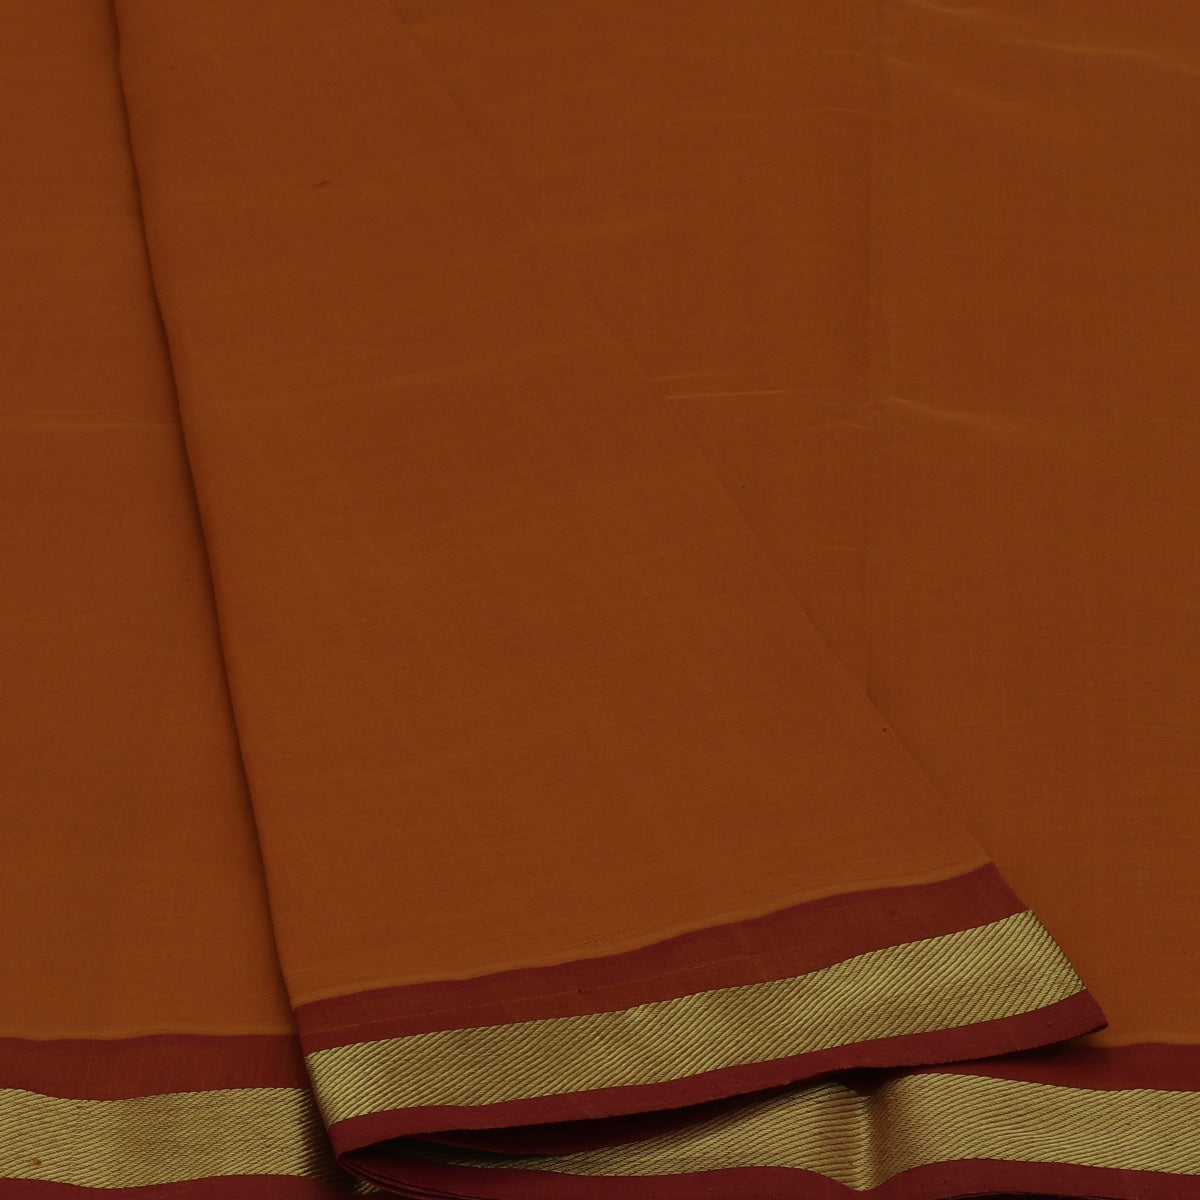 Poly Cotton Saree Dark Mustard and maroon with Zari border